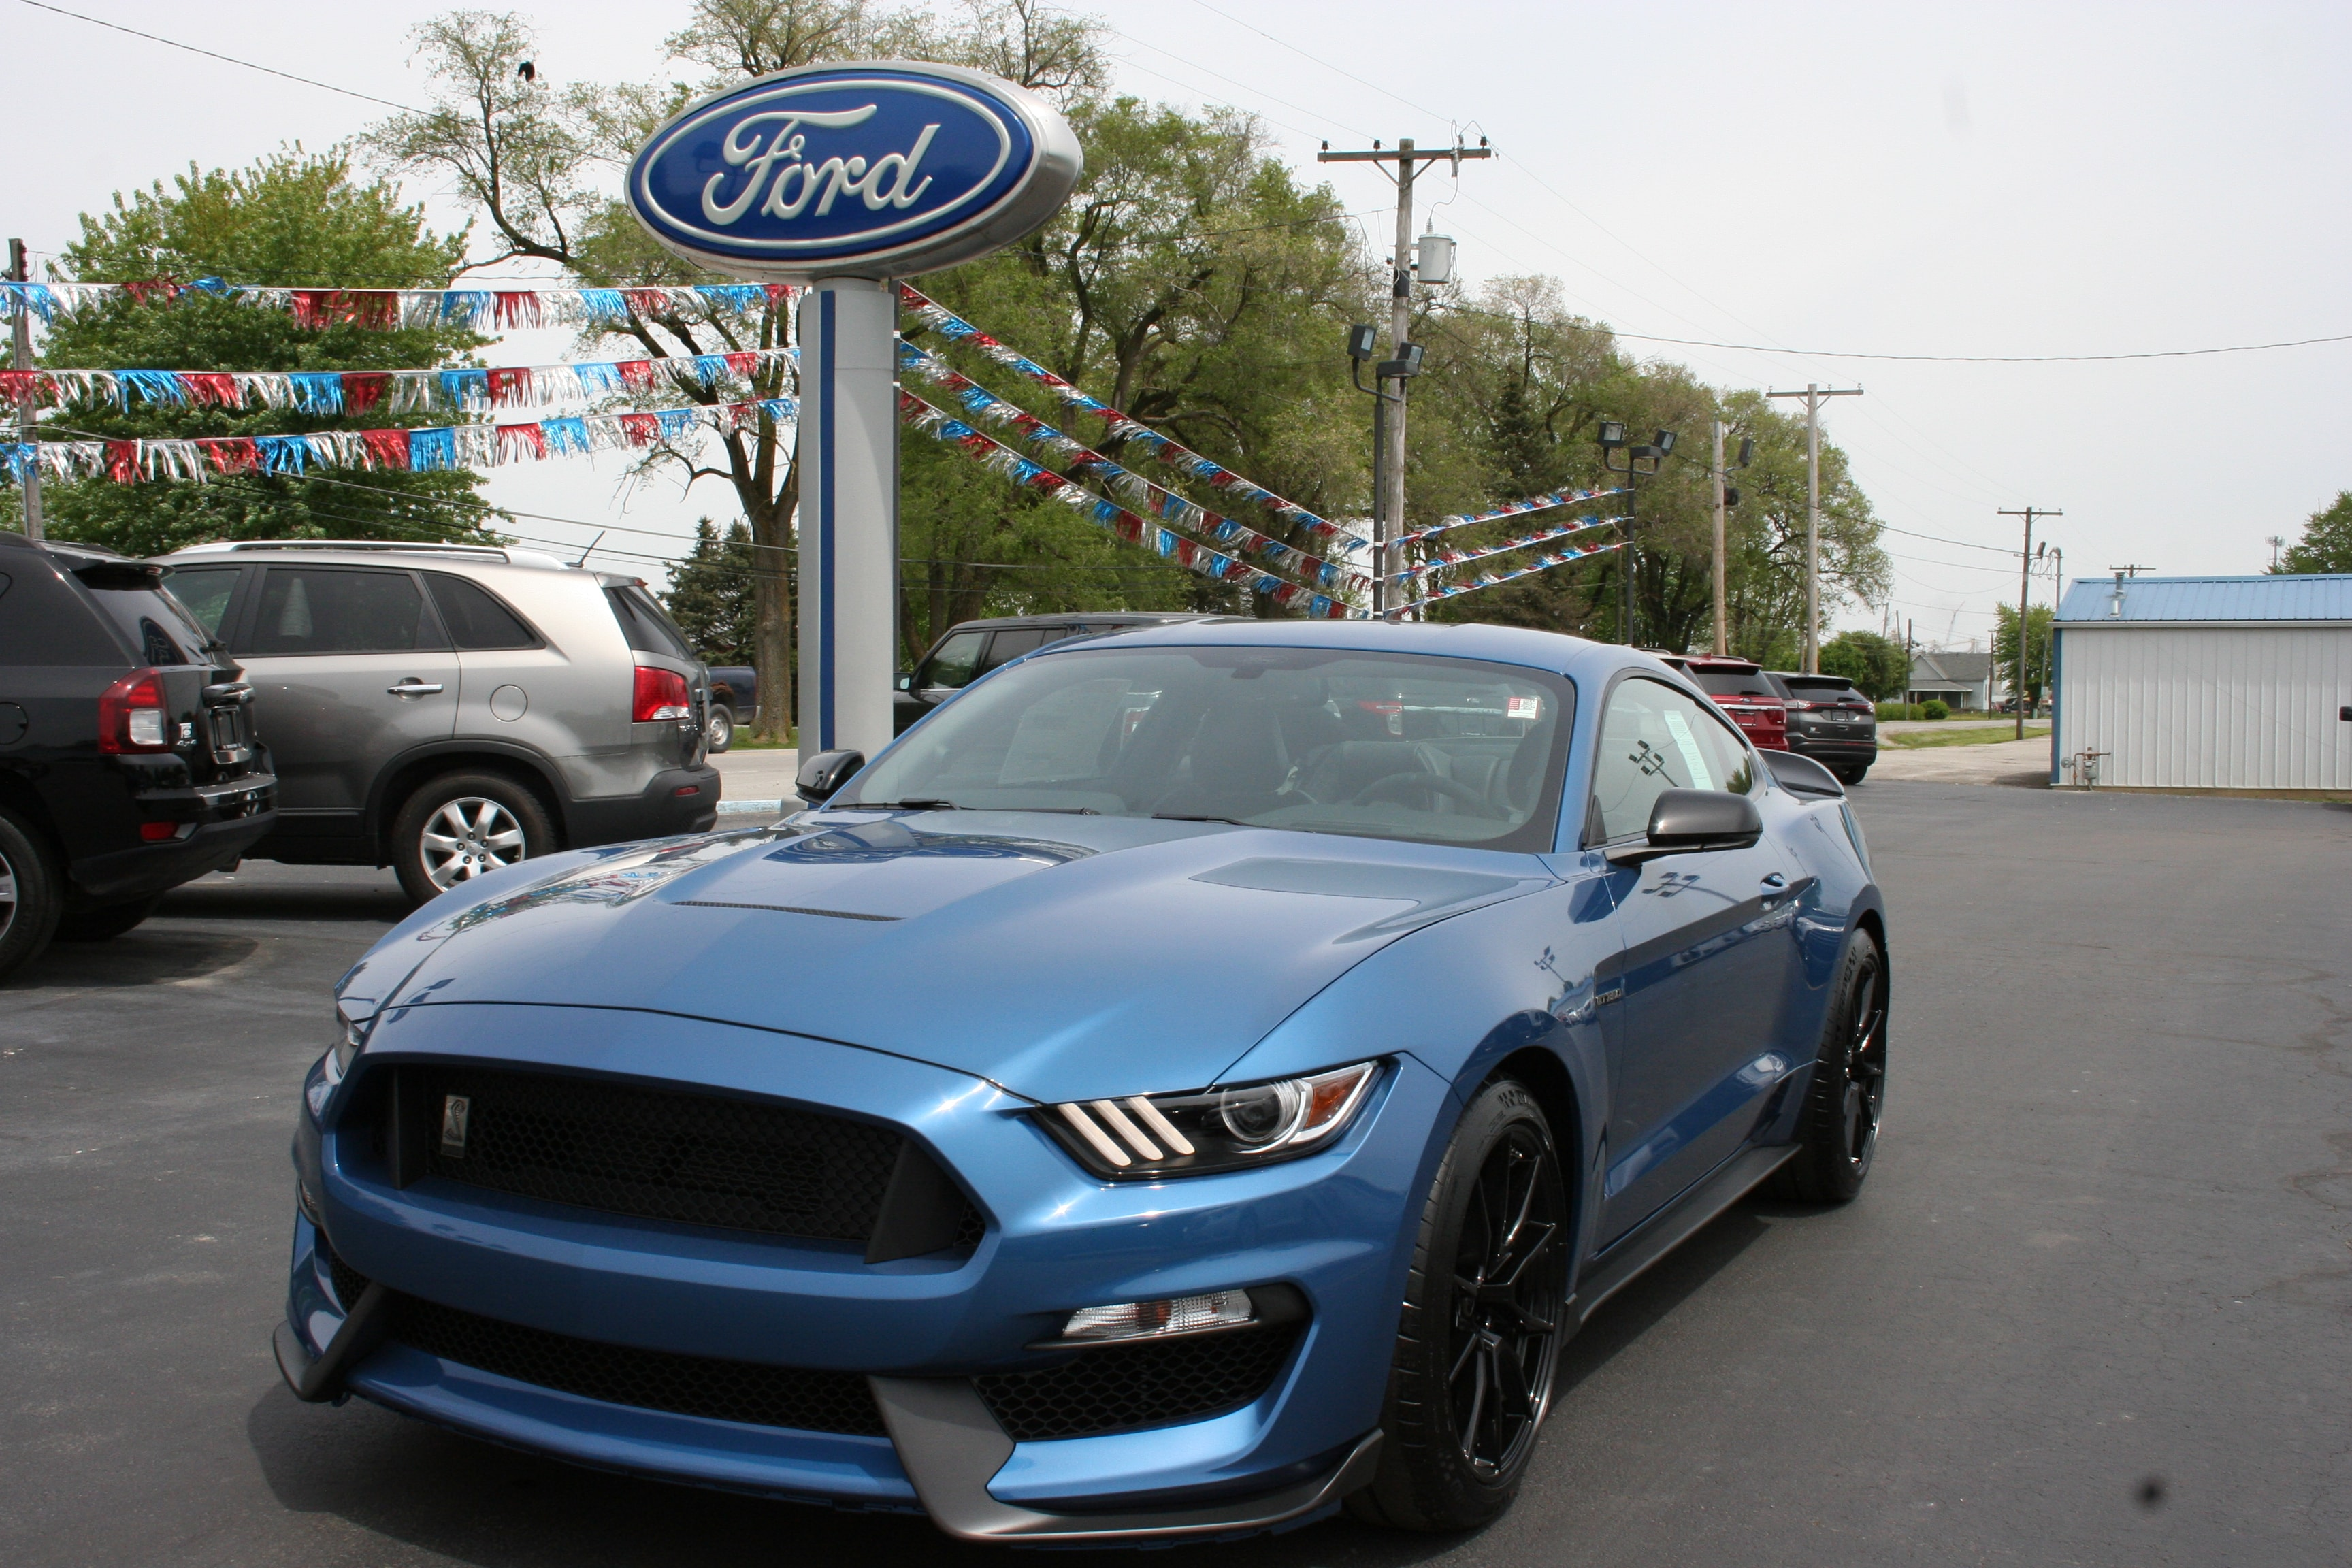 2019 Ford Mustang Shelby GT350 w/leather & navigation Coupe